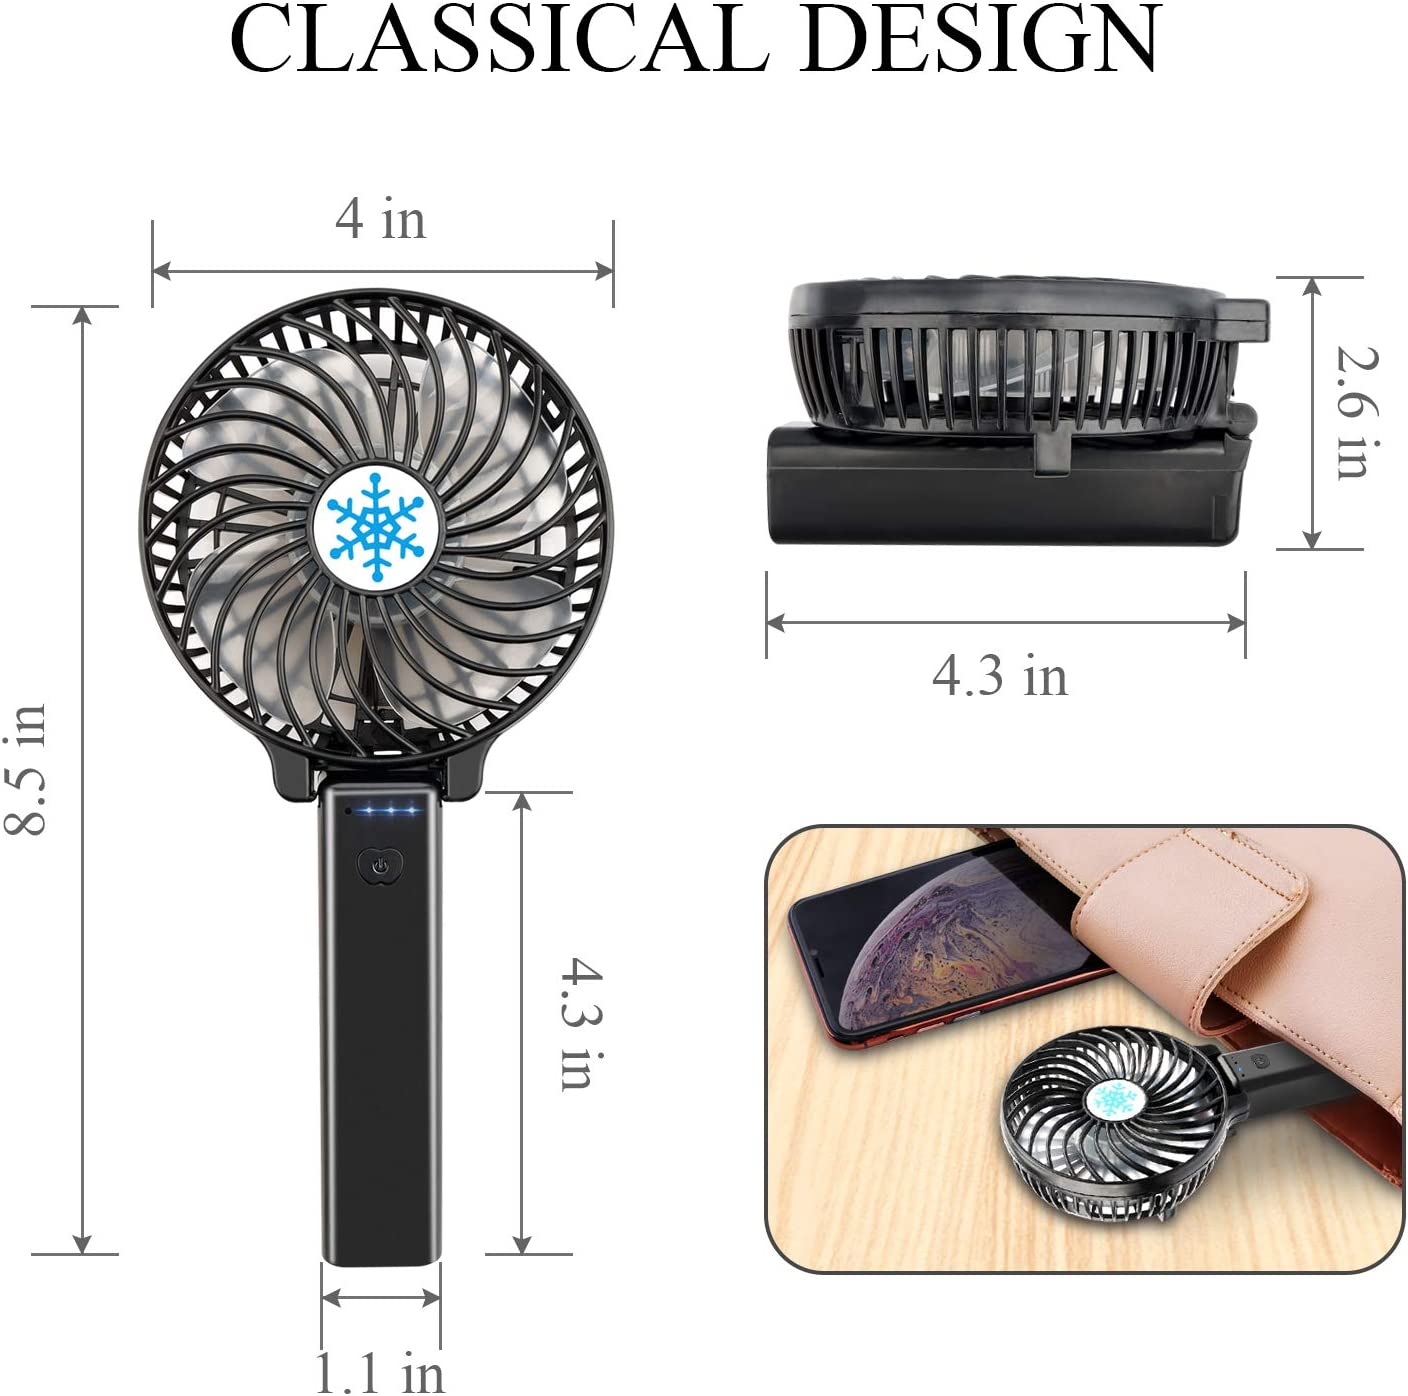 MelooLife Personal Portable Desk Stroller Table Mini Fan USB Rechargeable Battery Electric Fan for Office In-Door Outdoor Household and Traveling Portable Handheld Fan